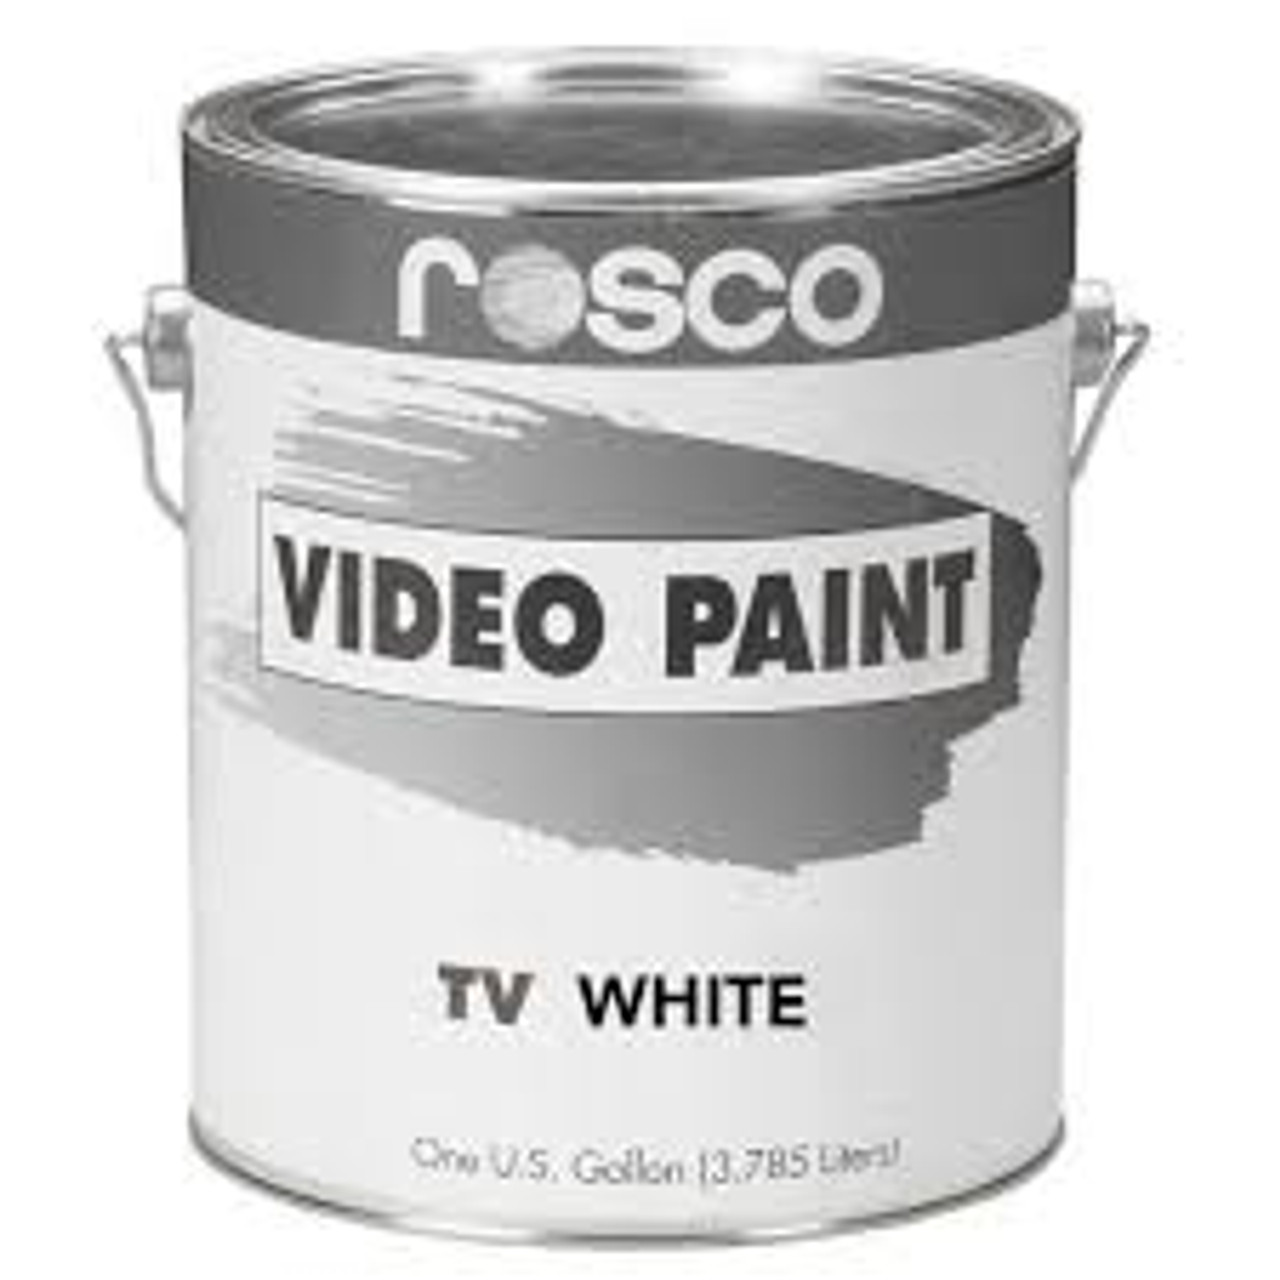 Rosco TV Paints White - Gallon, Green Screen